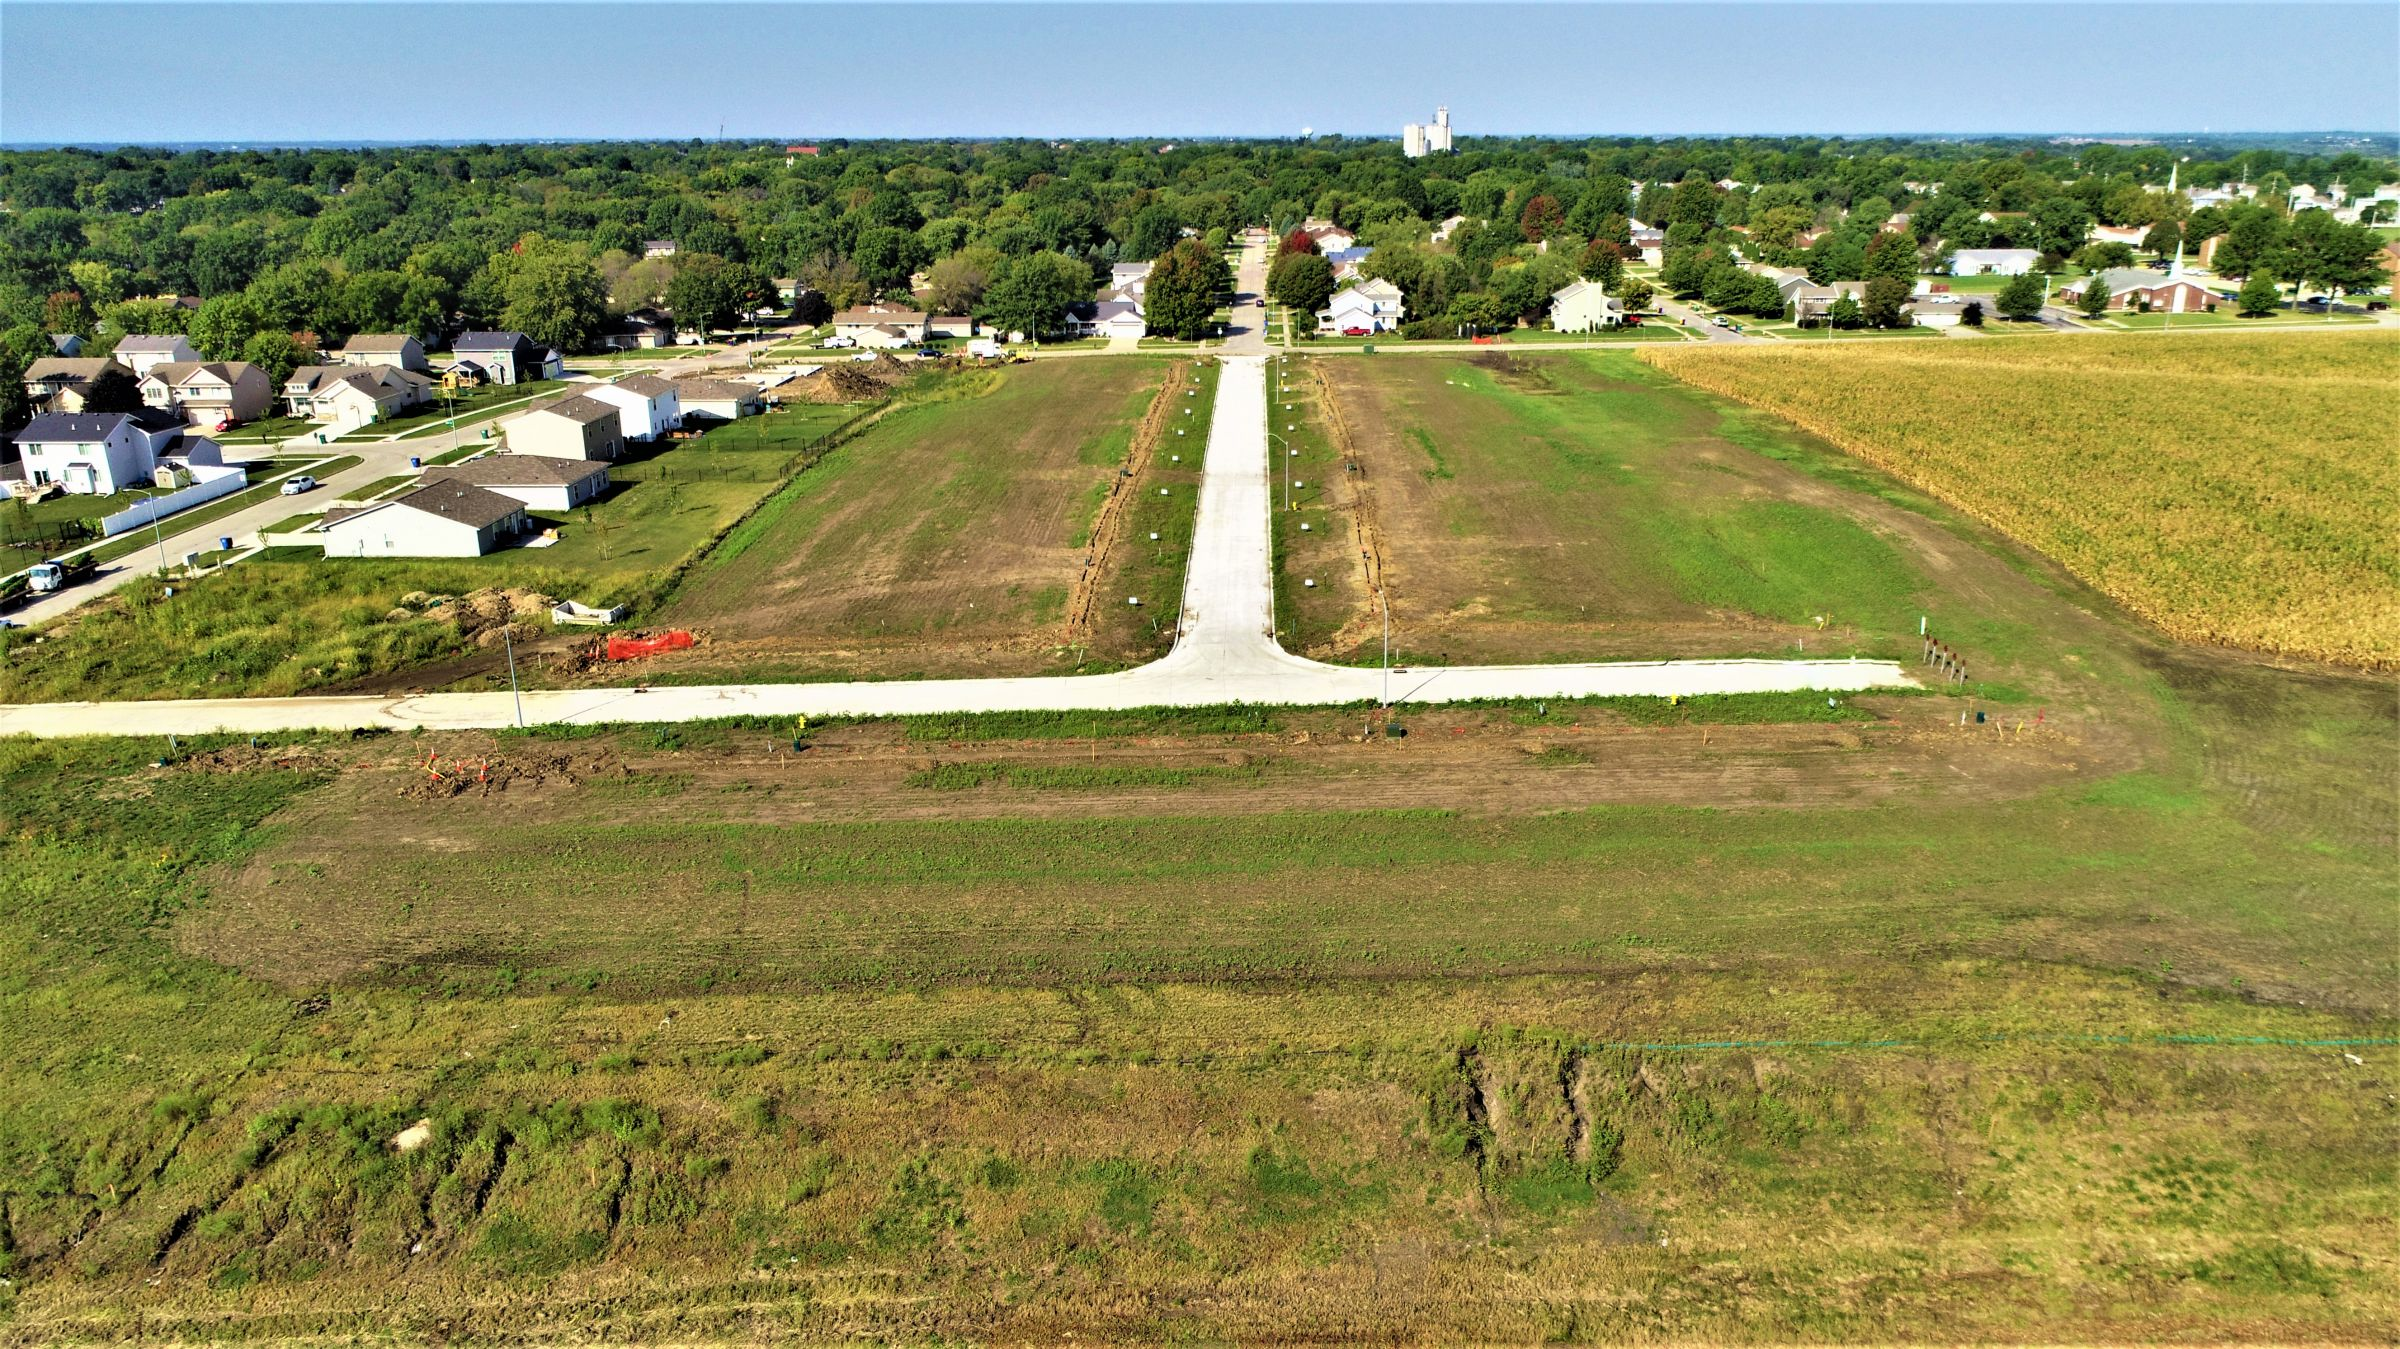 development-land-warren-county-iowa-0-acres-listing-number-13829-8-2020-11-02-205846.JPG